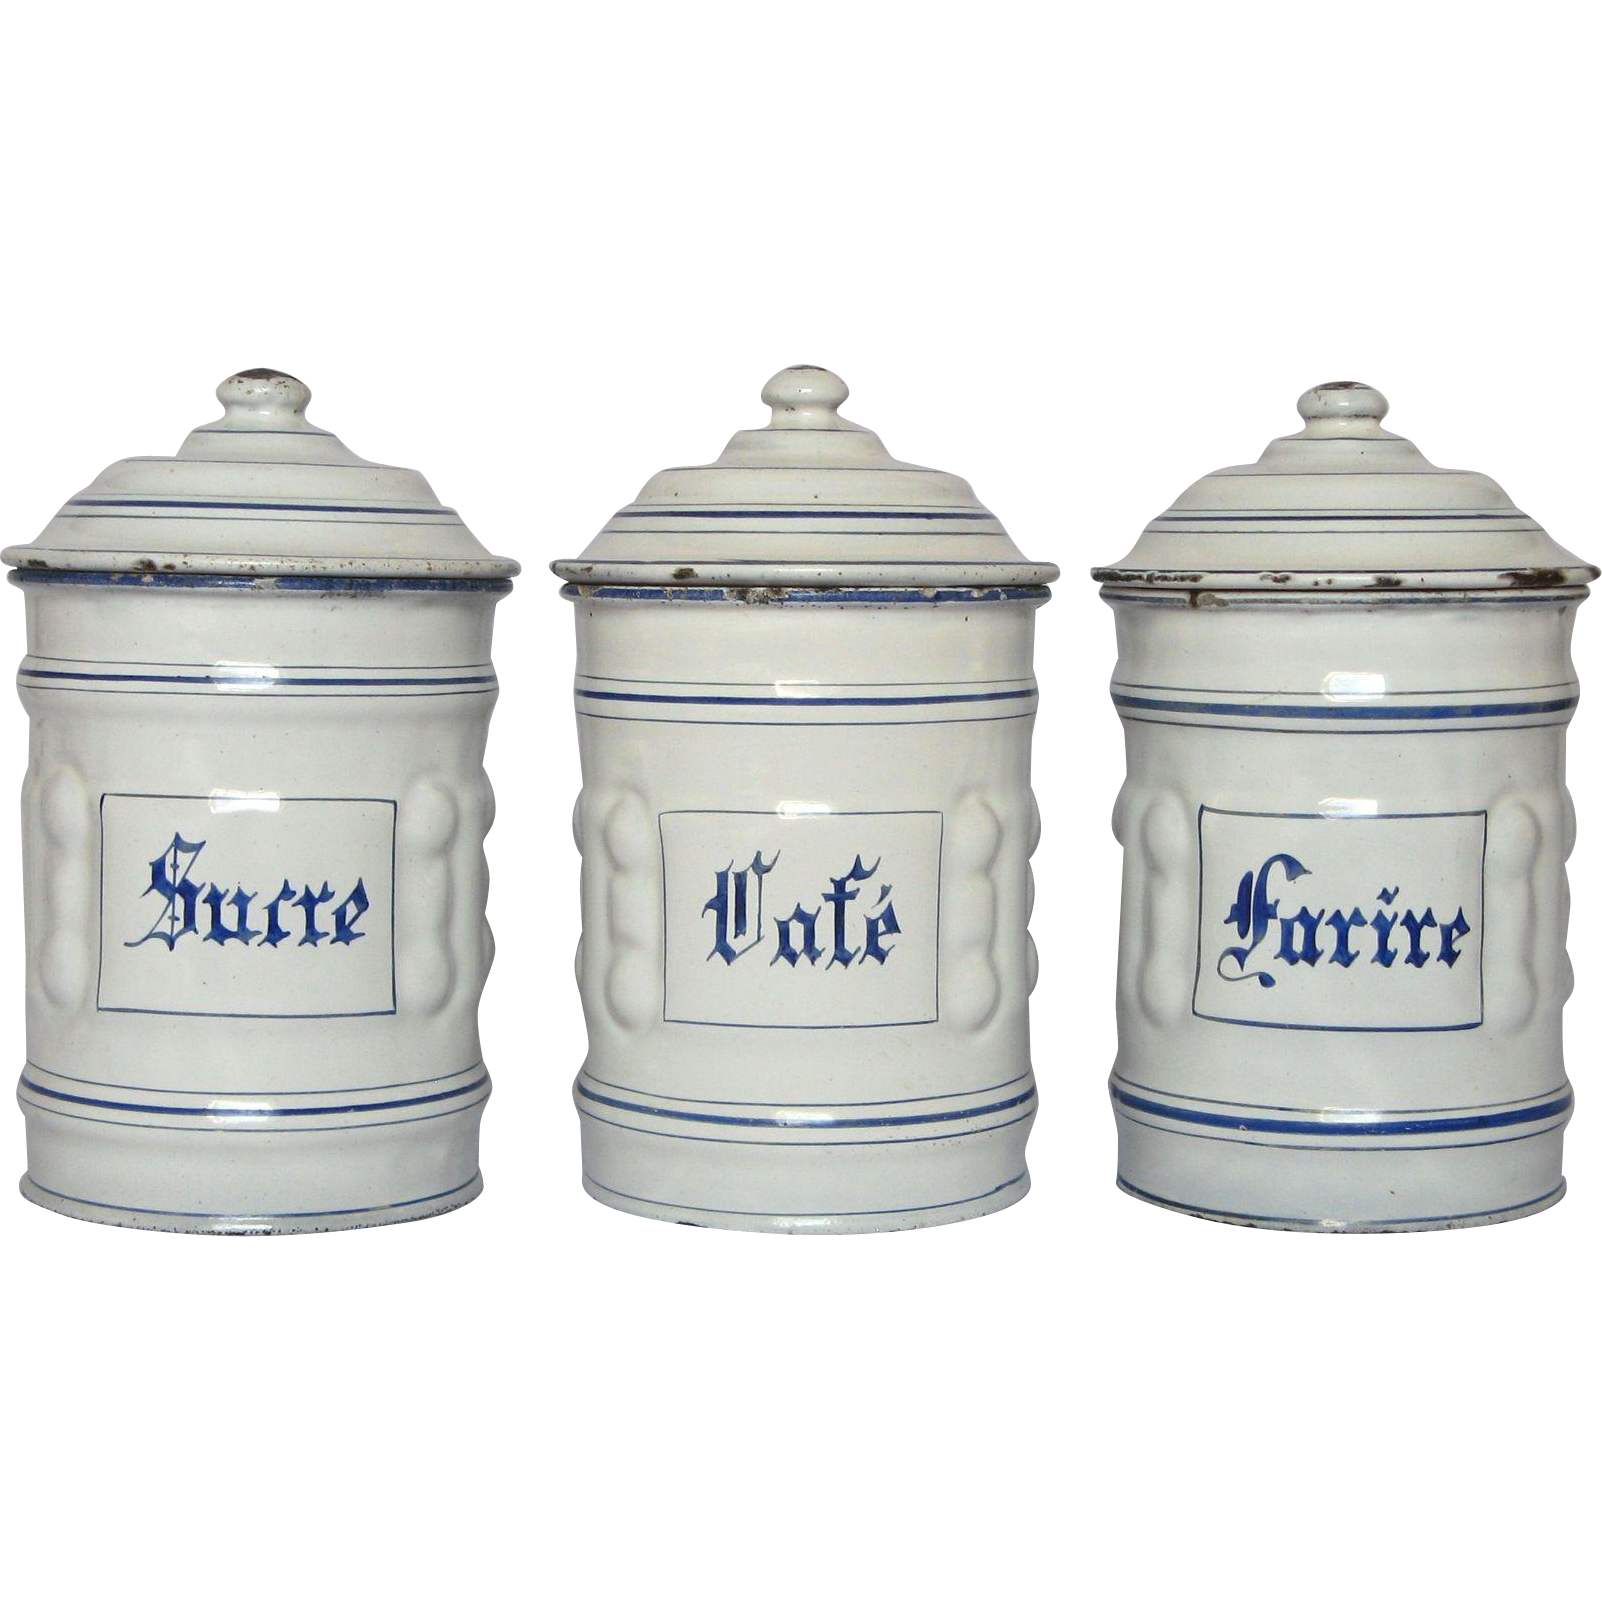 French Kitchen Canisters: Set Of Three French Enamel Graniteware Kitchen Canisters